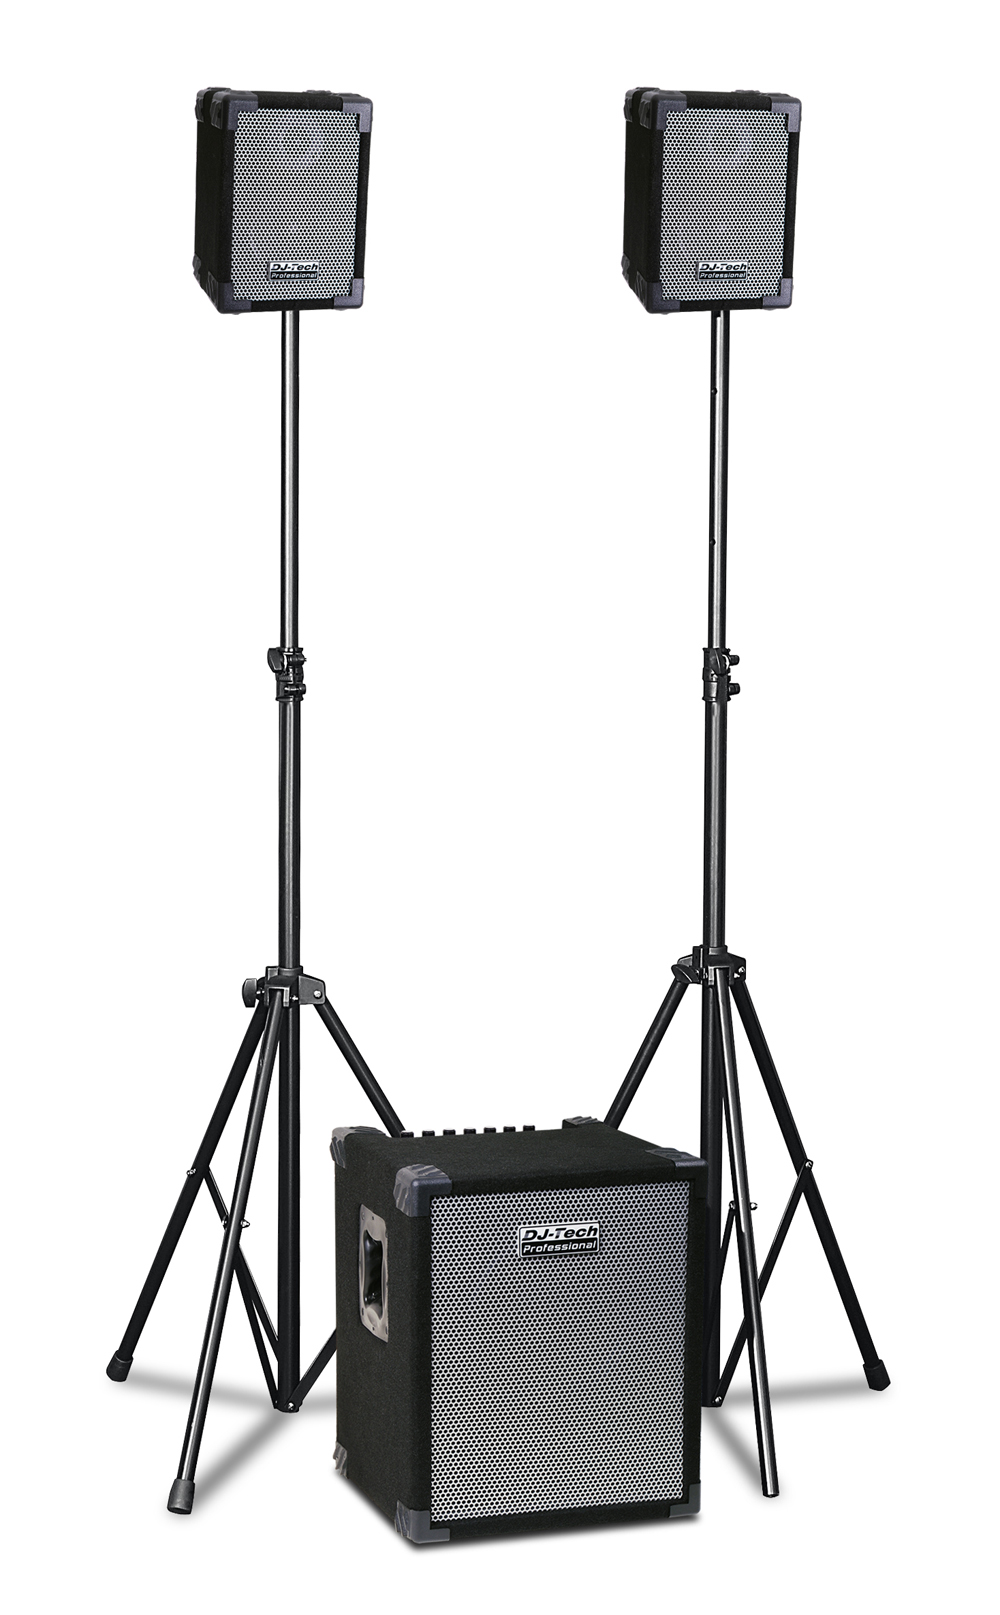 dj tech cube 202 280 watts portable pa system with 4 ch mixer built in. Black Bedroom Furniture Sets. Home Design Ideas